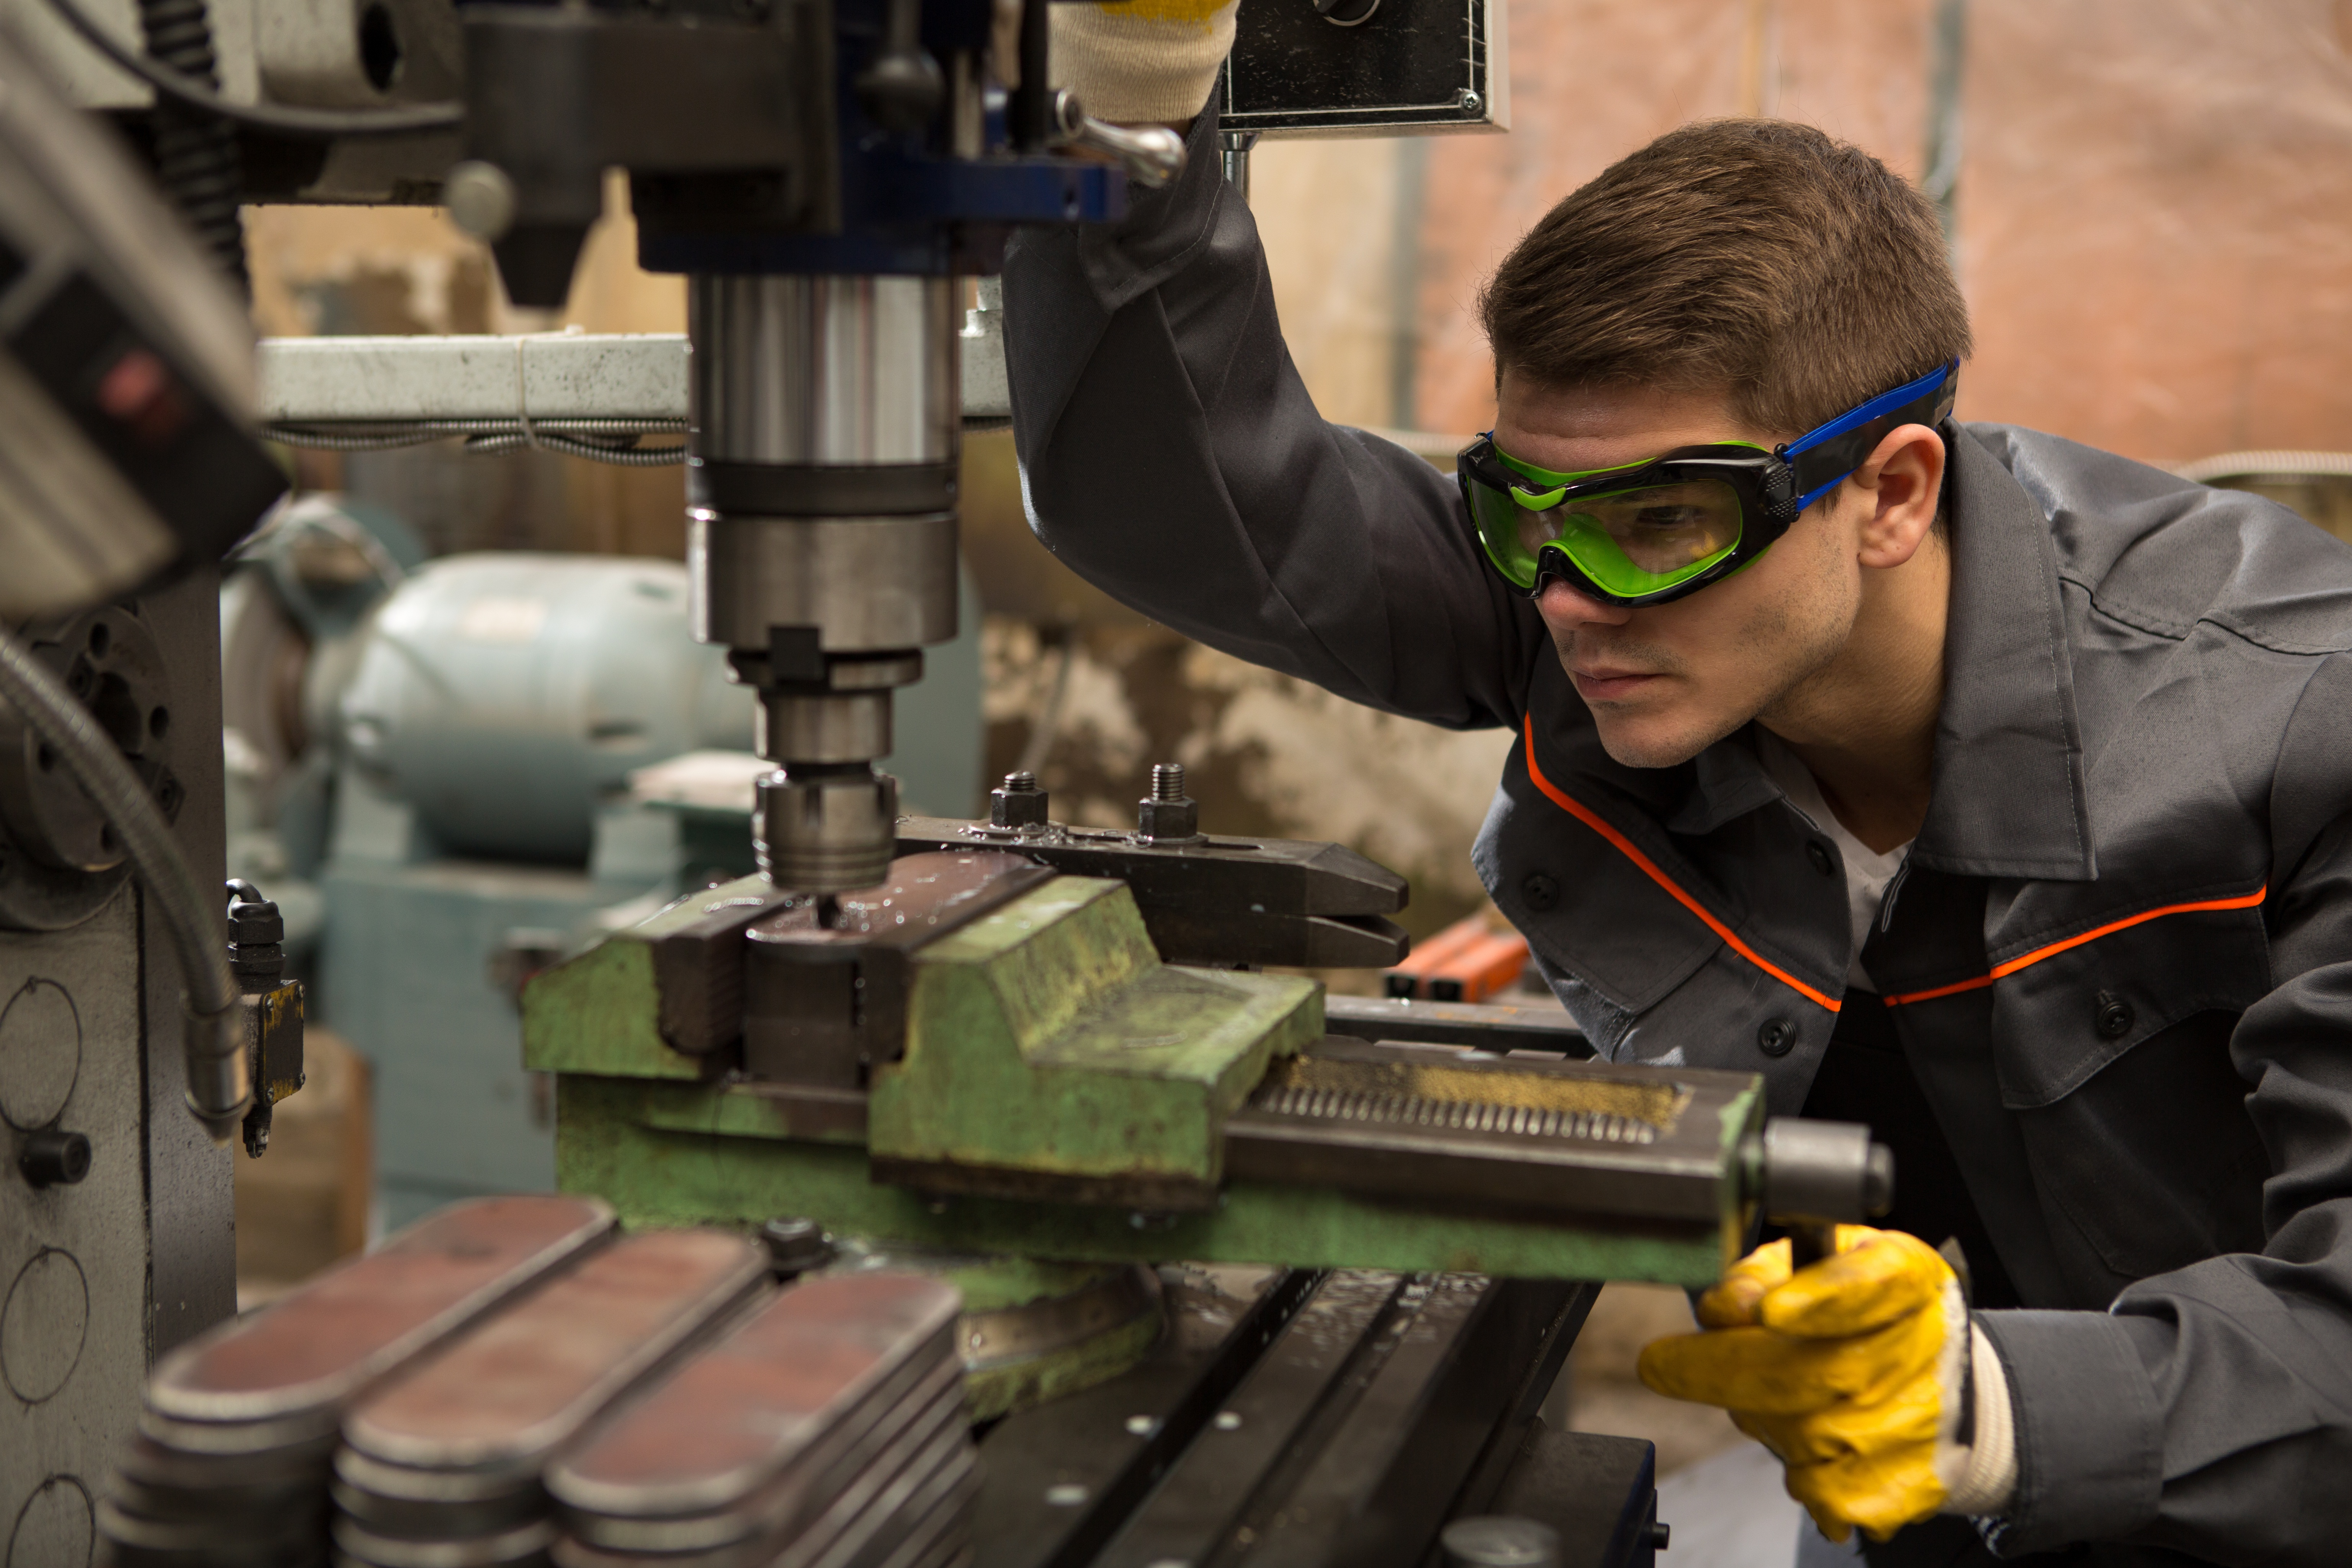 Safety Eyewear: Does Fit Really Matter? 4 Easy Tips To Help You Decide.